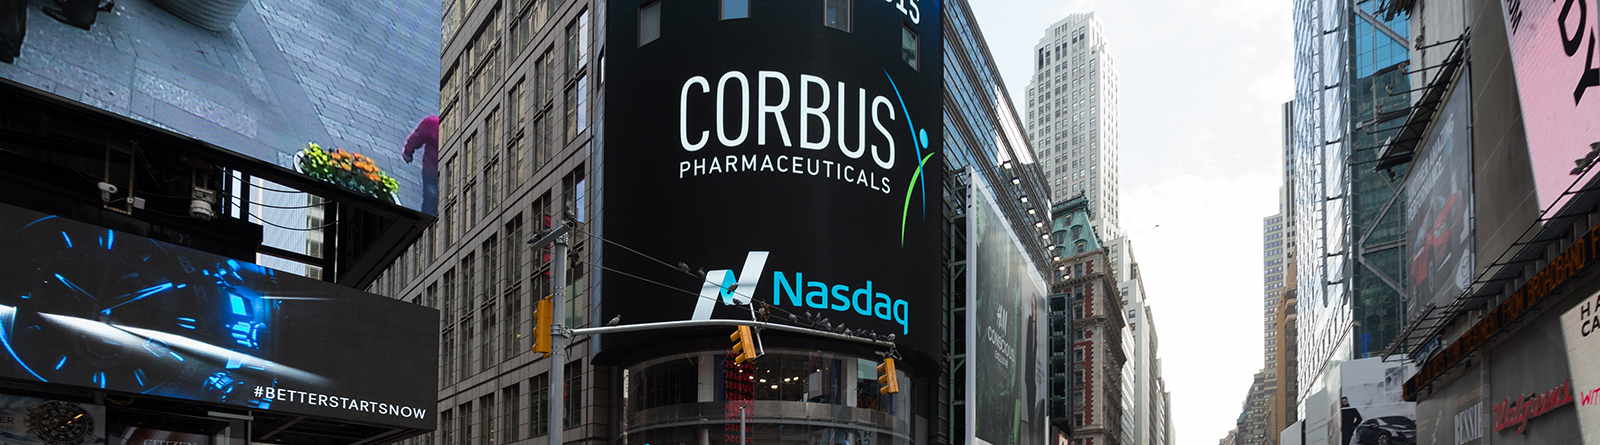 Corbus Pharmaceuticals Announces Closing of $46 Million Public Offering of Common Stock including Full Exercise of Underwriters' Option to Purchase Additional Shares Banner